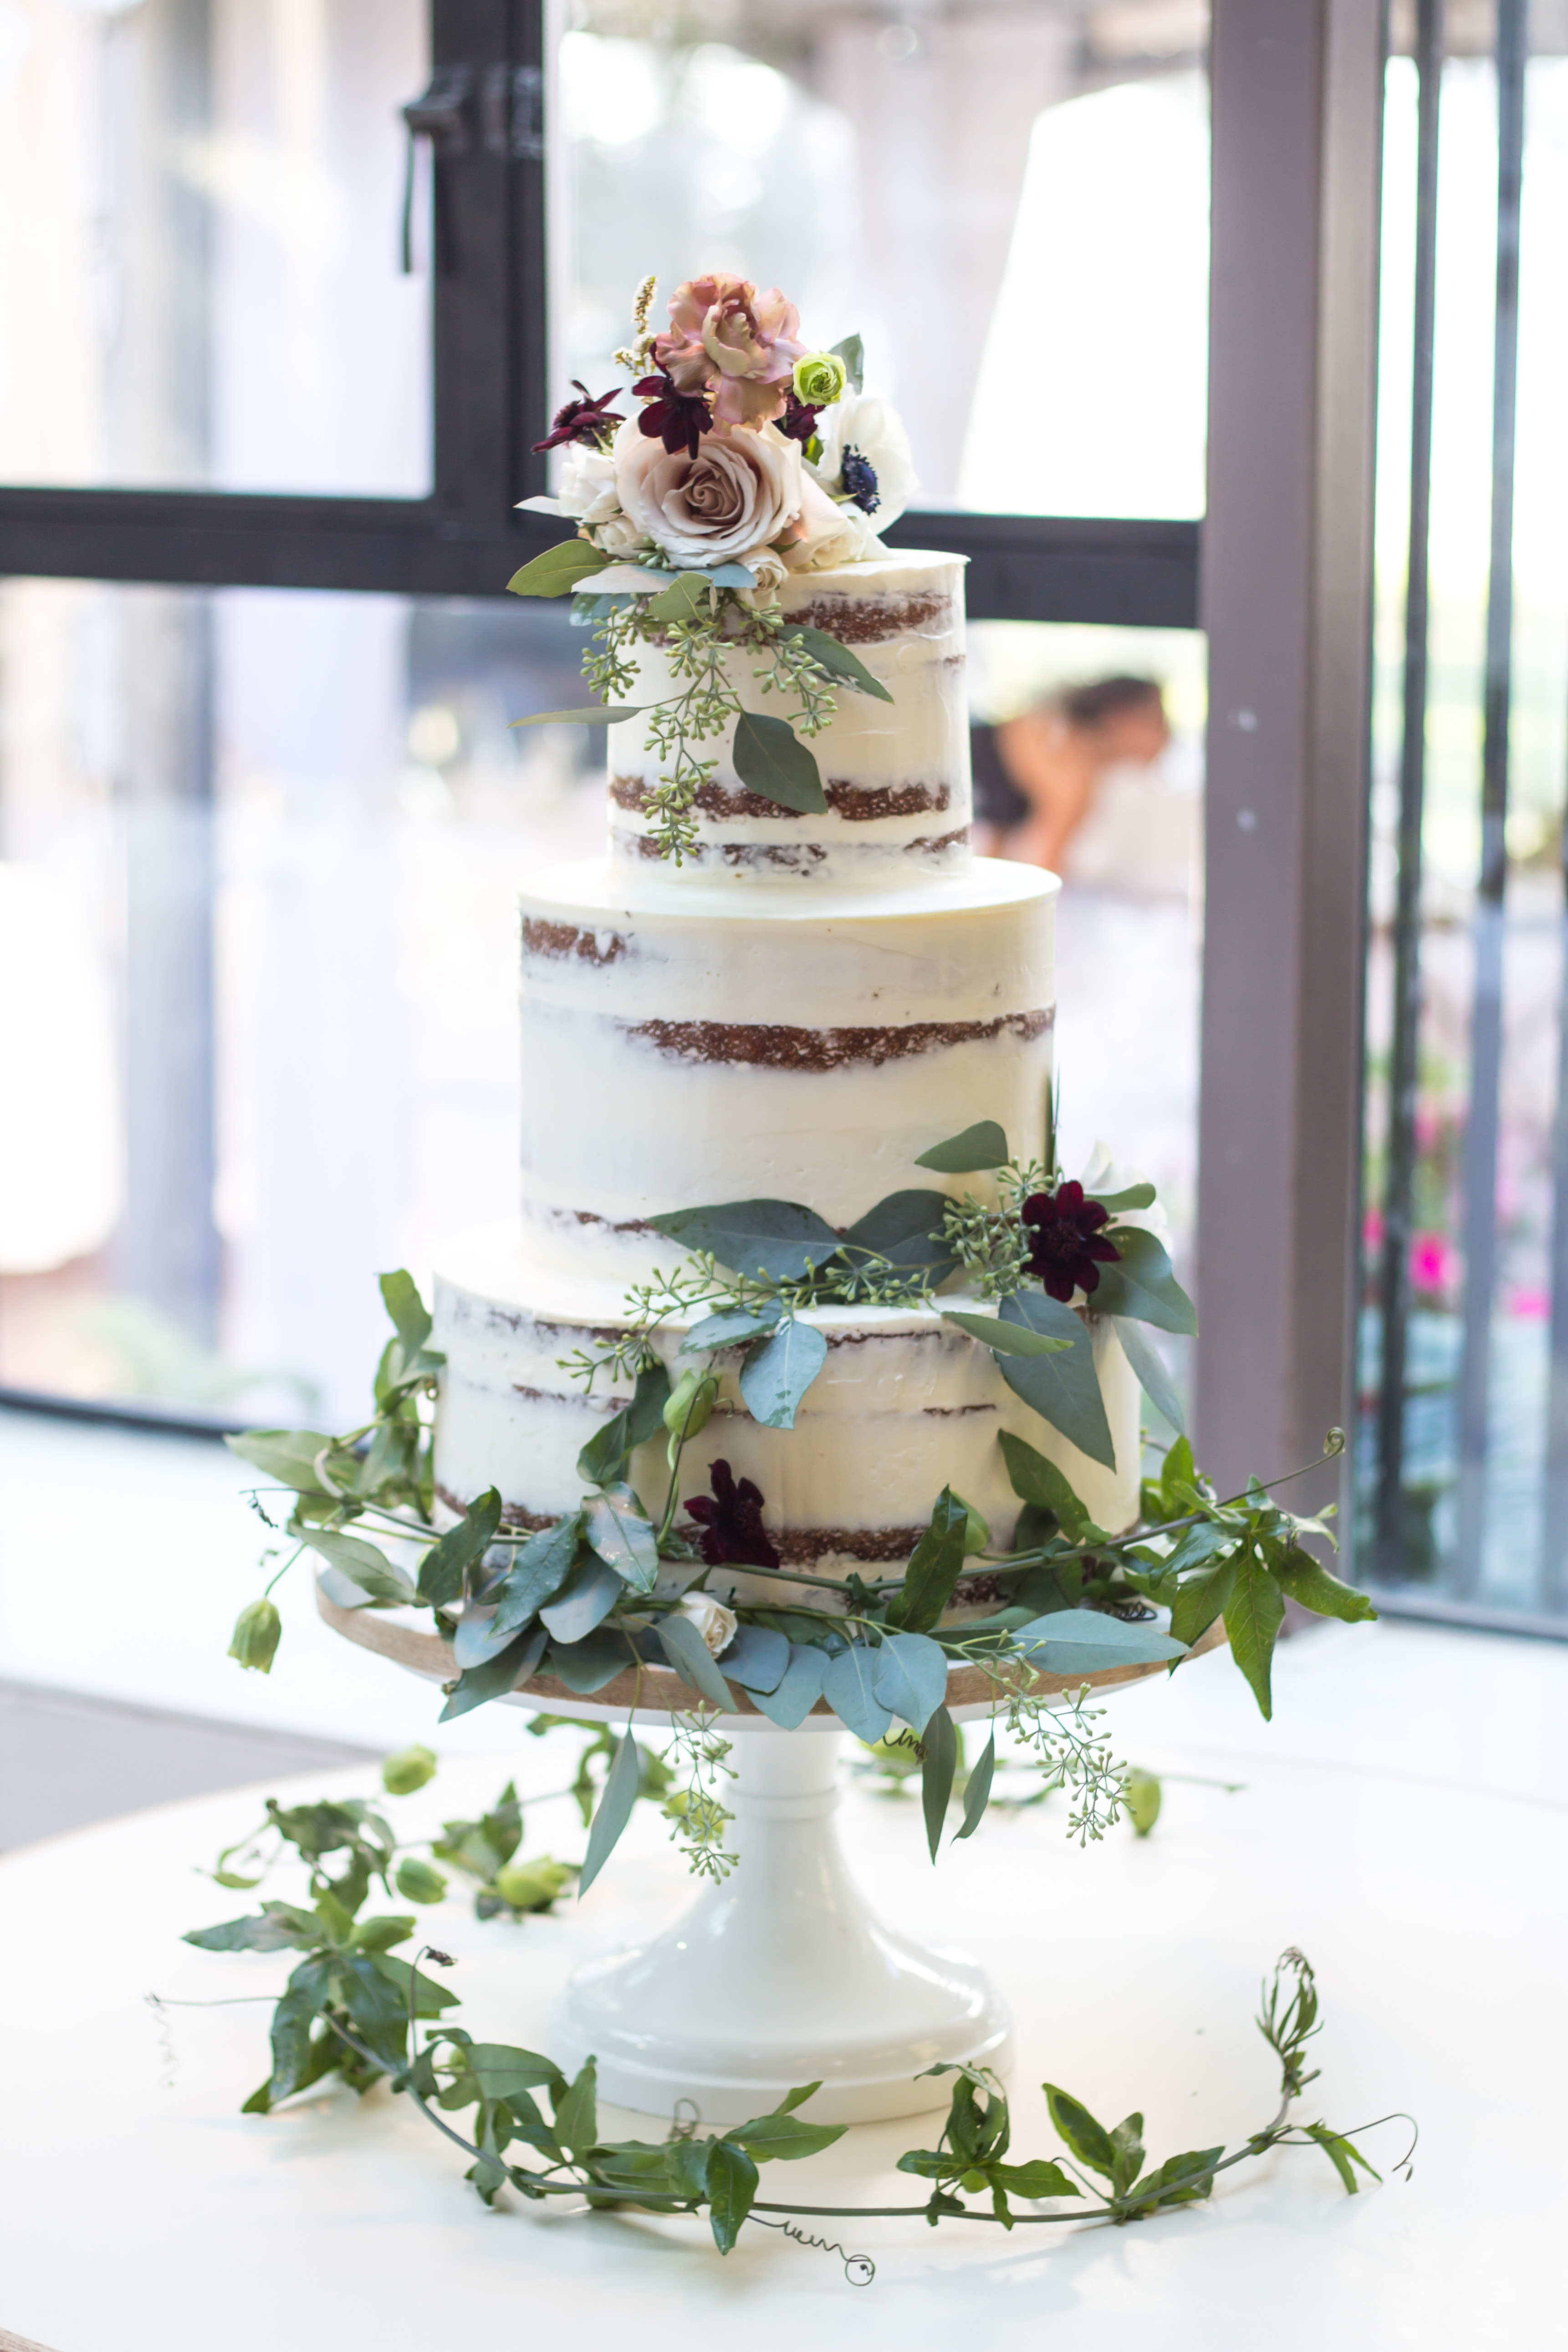 Cake By Annie Vancouver Custom Cakes Vancouver Wedding Cakes